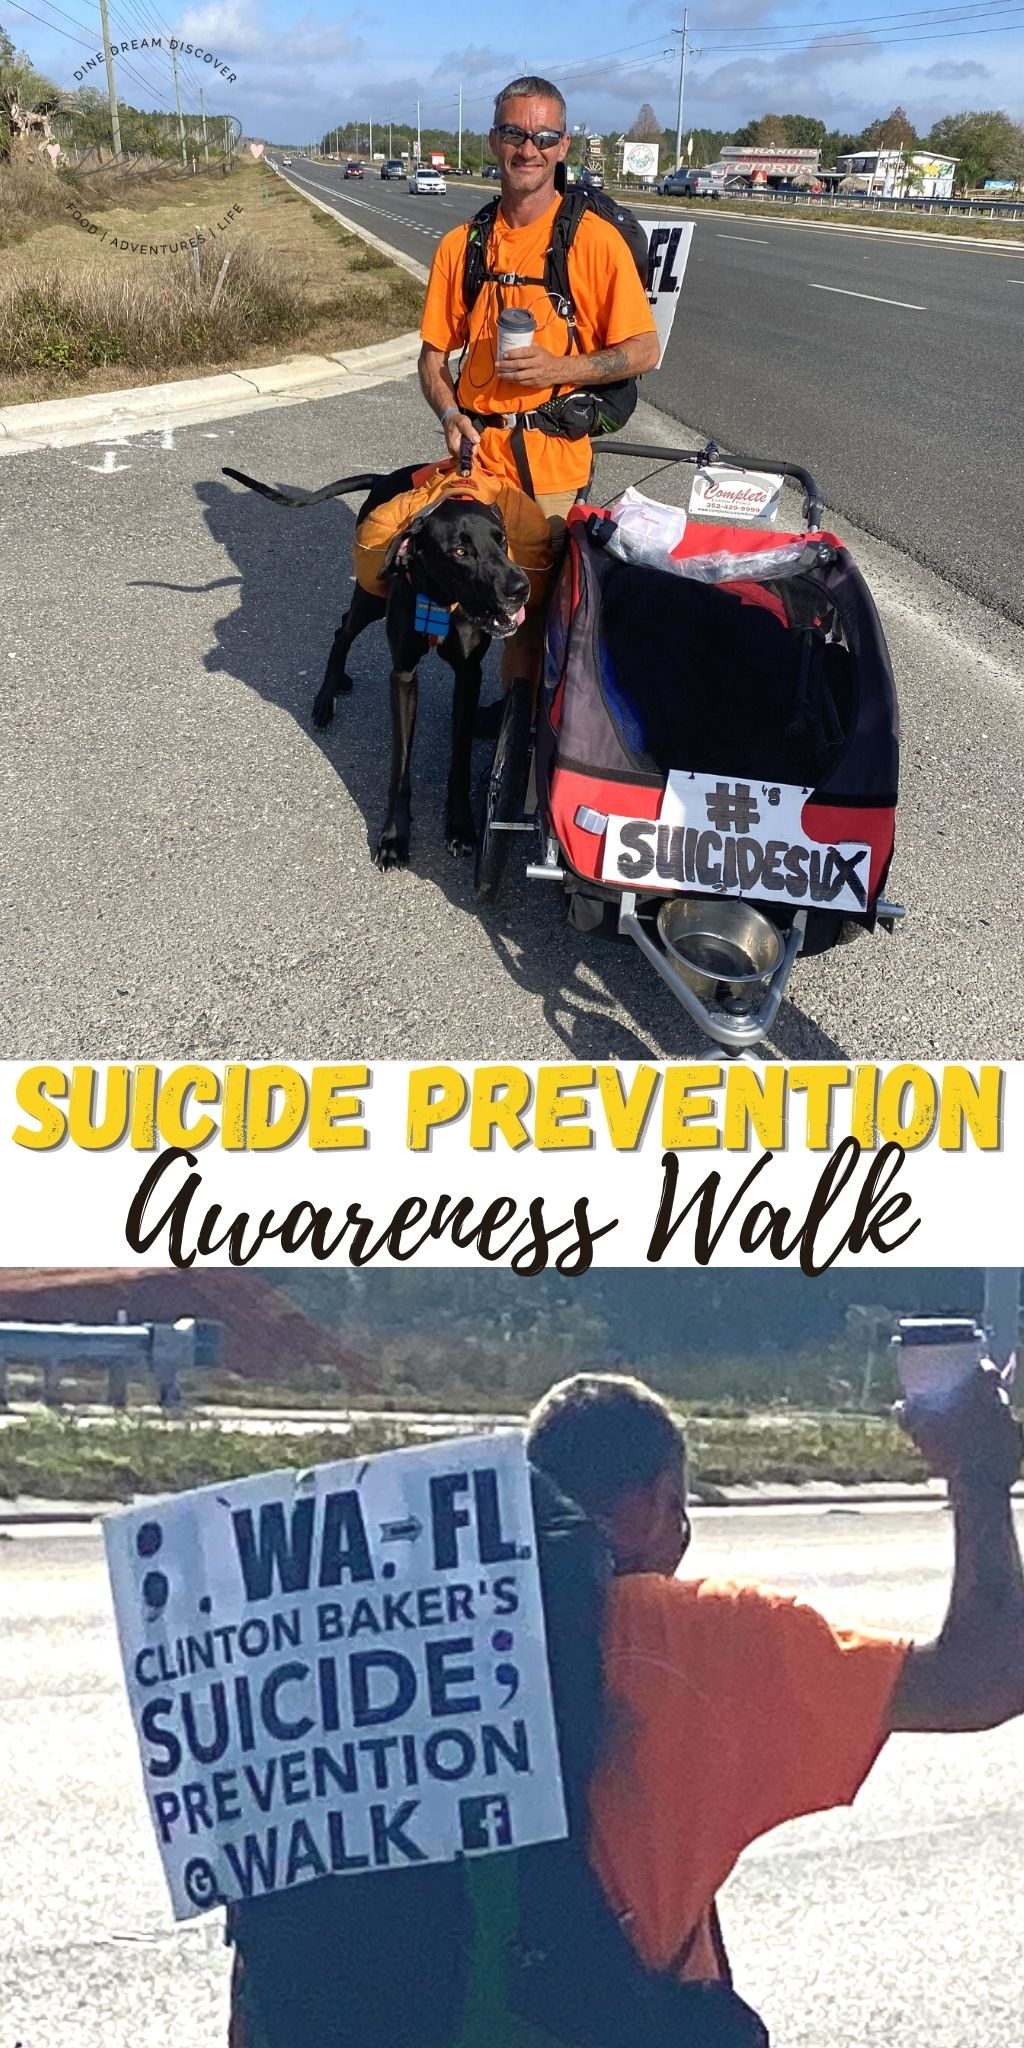 Suicide Prevention Awareness Walk FL to WA to FL